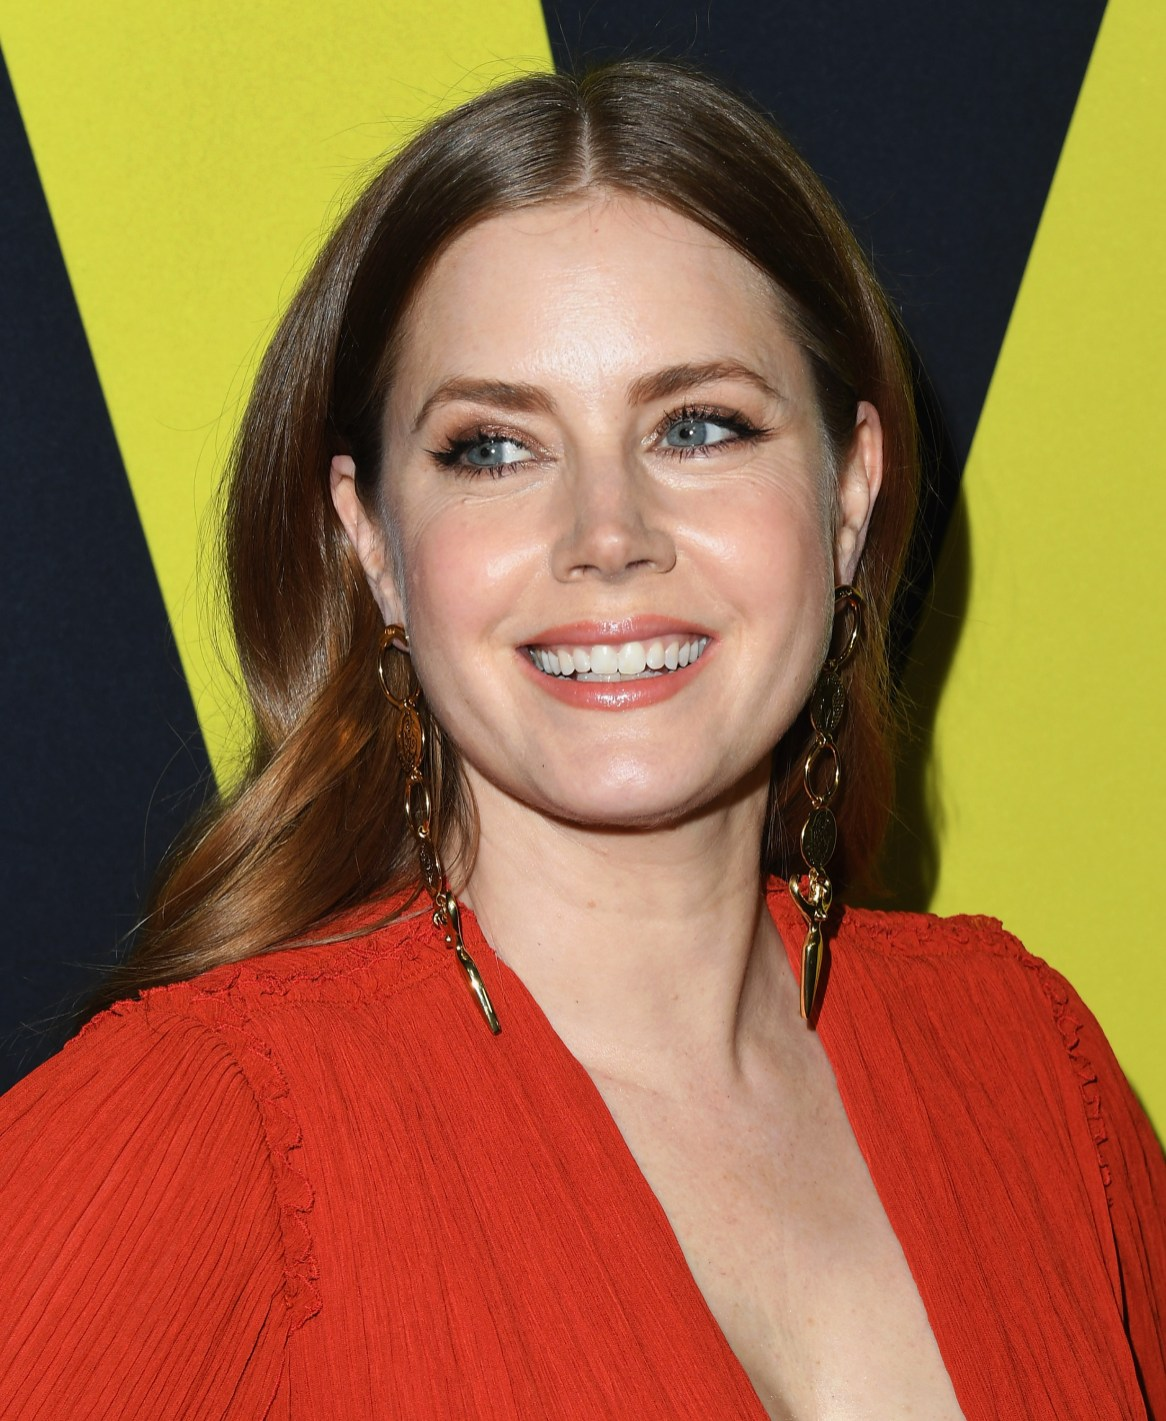 """BEVERLY HILLS, CA - DECEMBER 11: Amy Adams attends Annapurna Pictures, Gary Sanchez Productions And Plan B Entertainment's World Premiere Of """"Vice"""" at AMPAS Samuel Goldwyn Theater on December 11, 2018 in Beverly Hills, California. (Photo by Jon Kopaloff/FilmMagic)"""